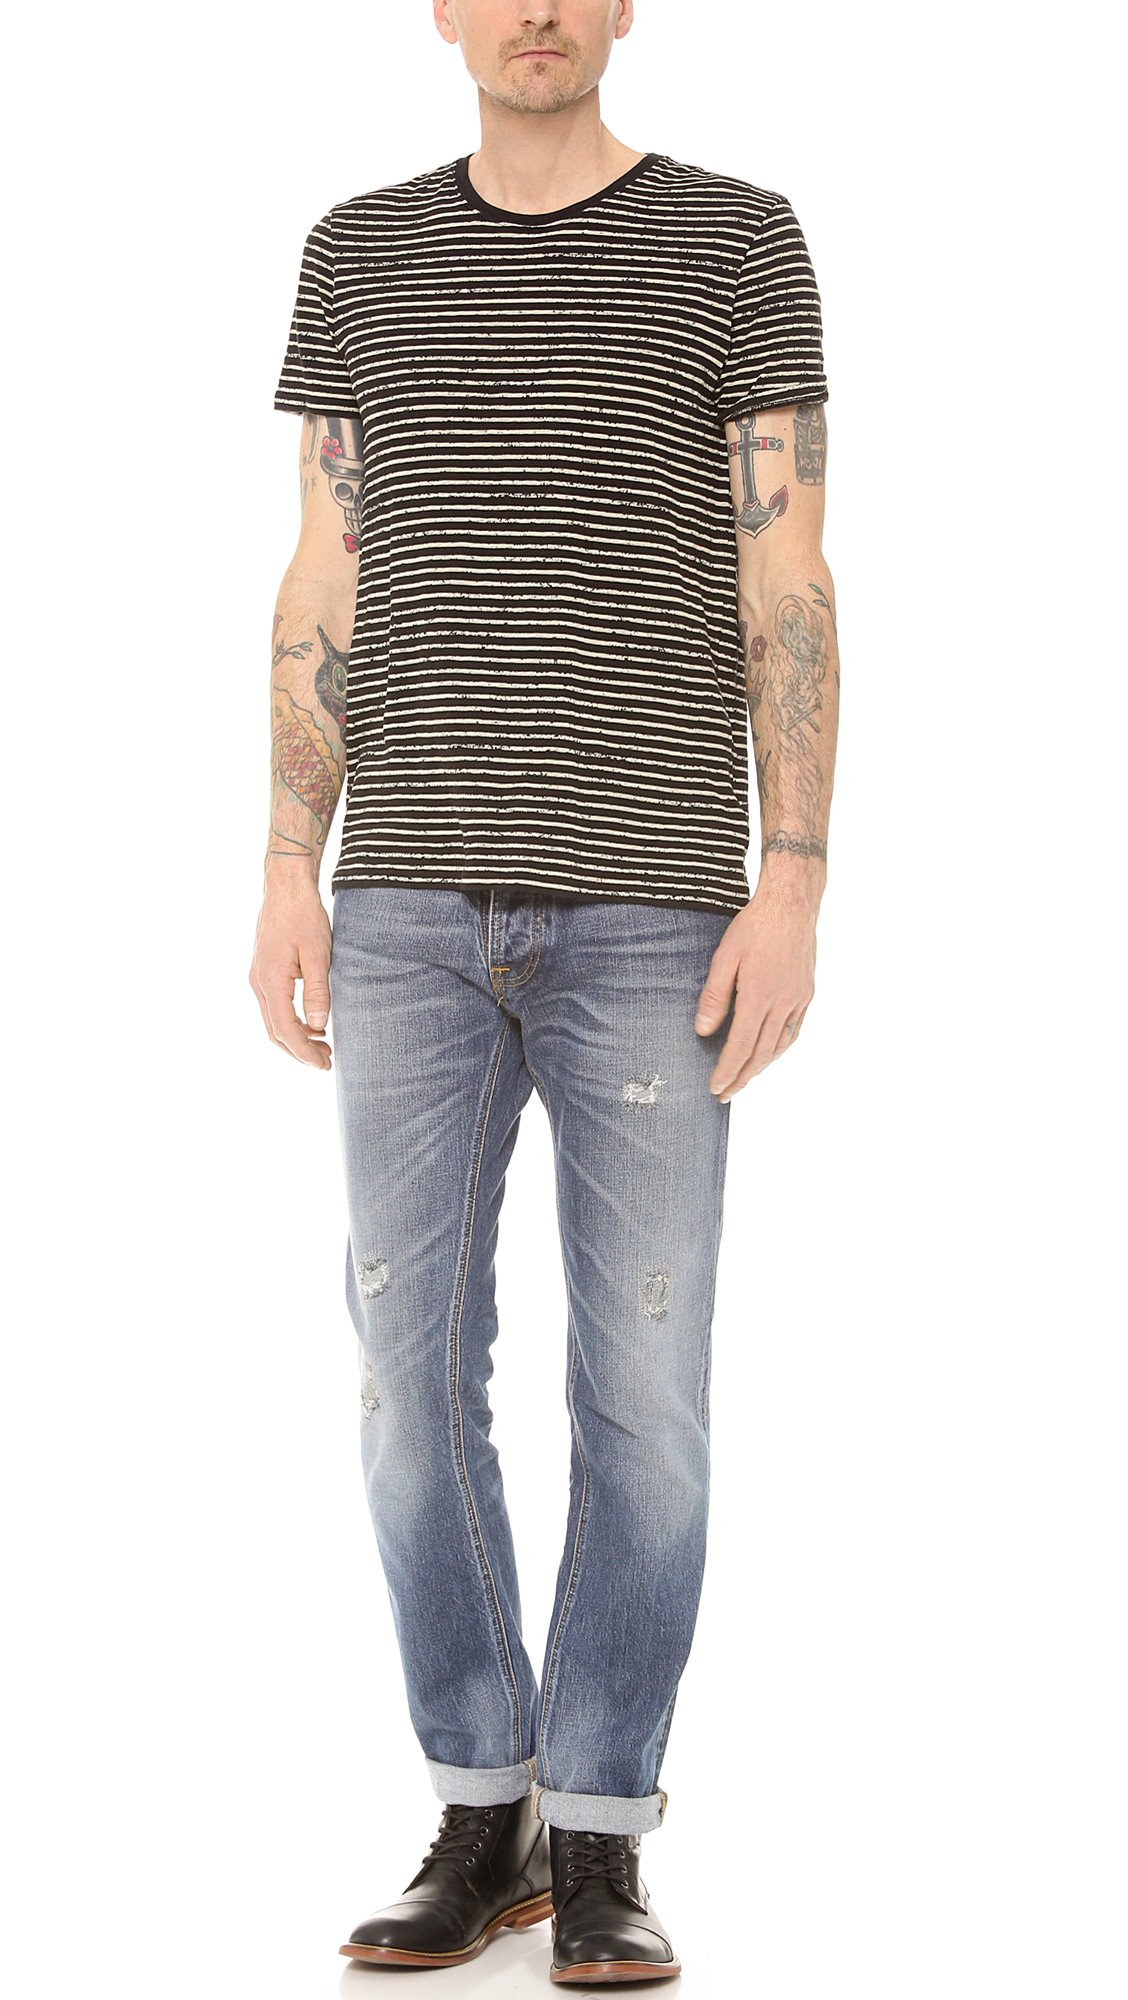 Nudie Jeans Grim Tim Org Mended Jeans in Blue for Men